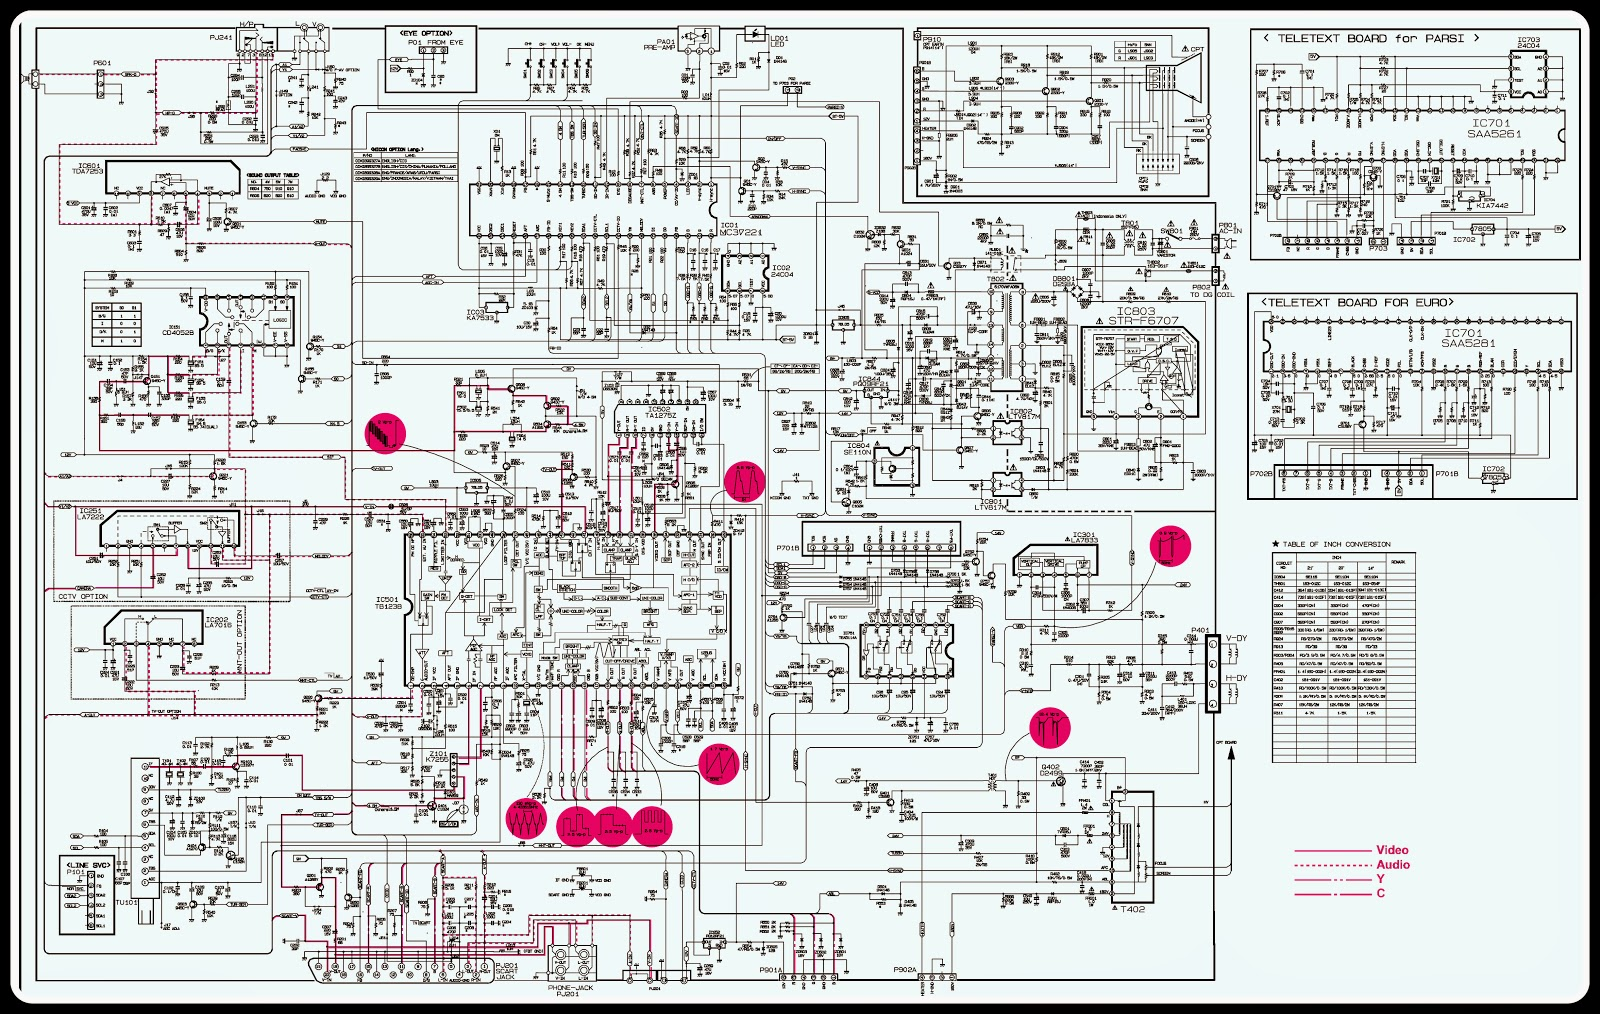 lg tv schematic diagram furthermore led tv schematic diagram on tv besides samsung tv service manual on lg tv schematic diagram [ 1600 x 1014 Pixel ]